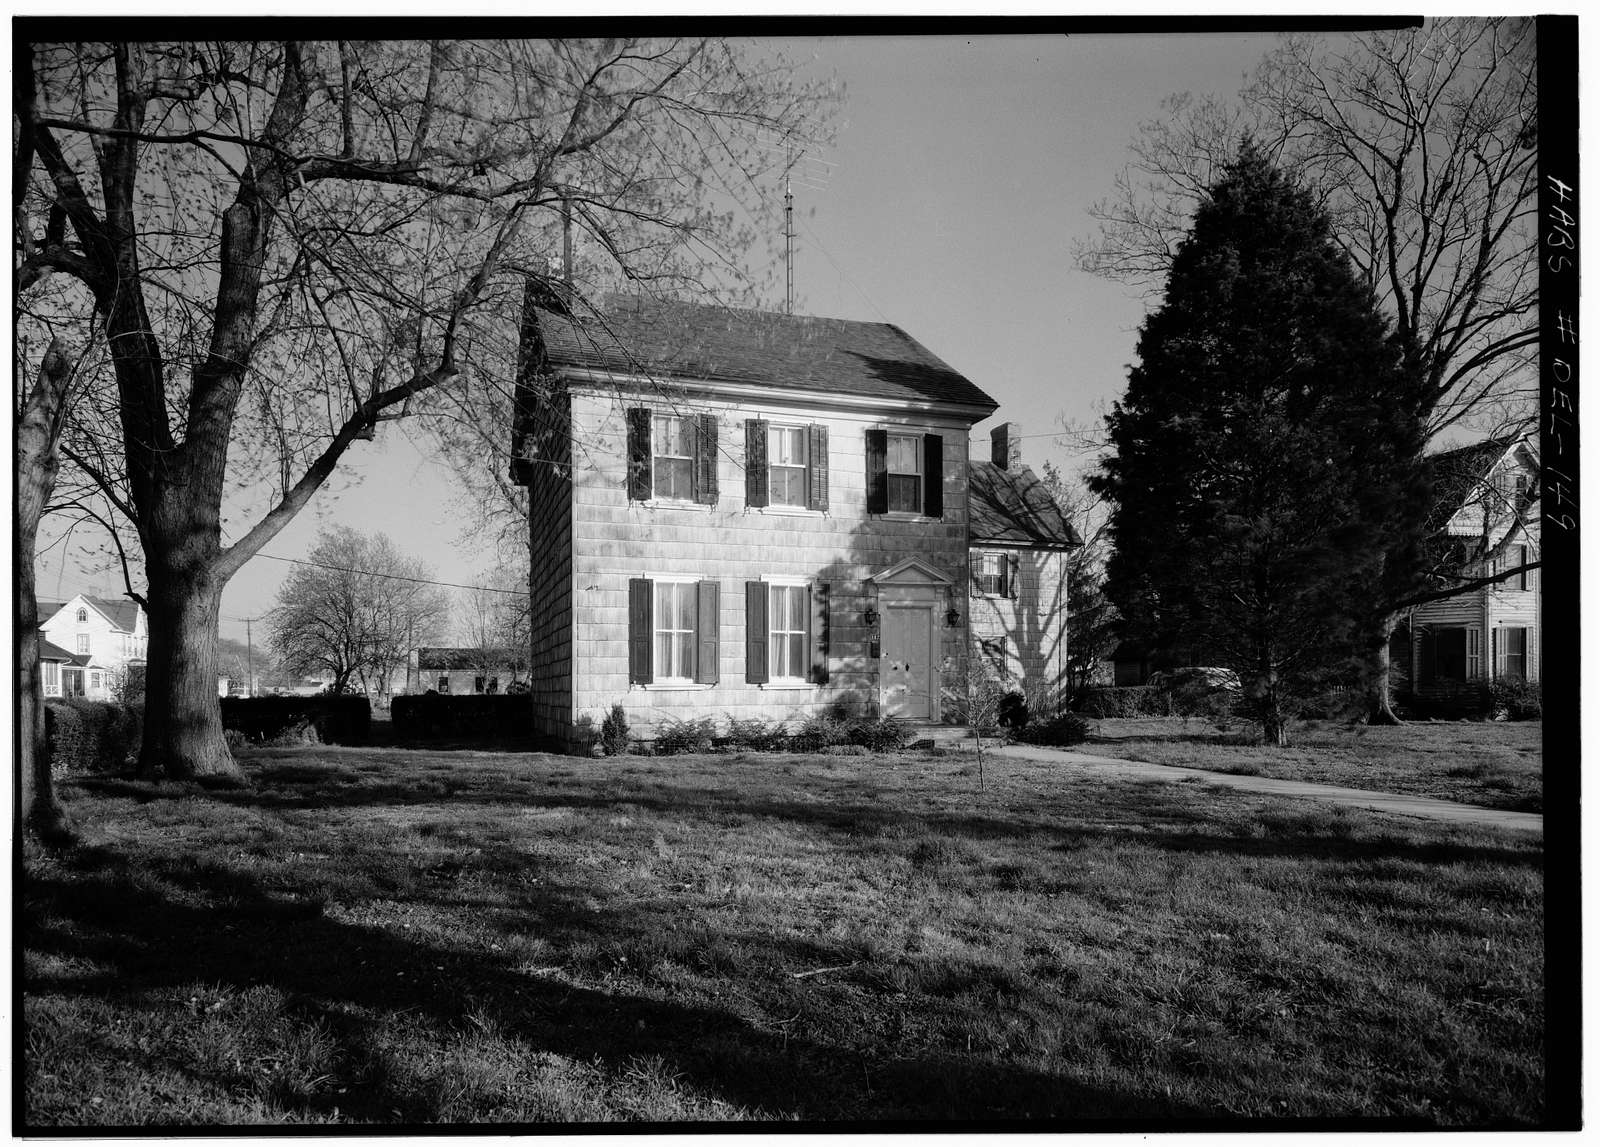 Colonel David Hall House, 107 Kings Highway, Lewes, Sussex County, DE